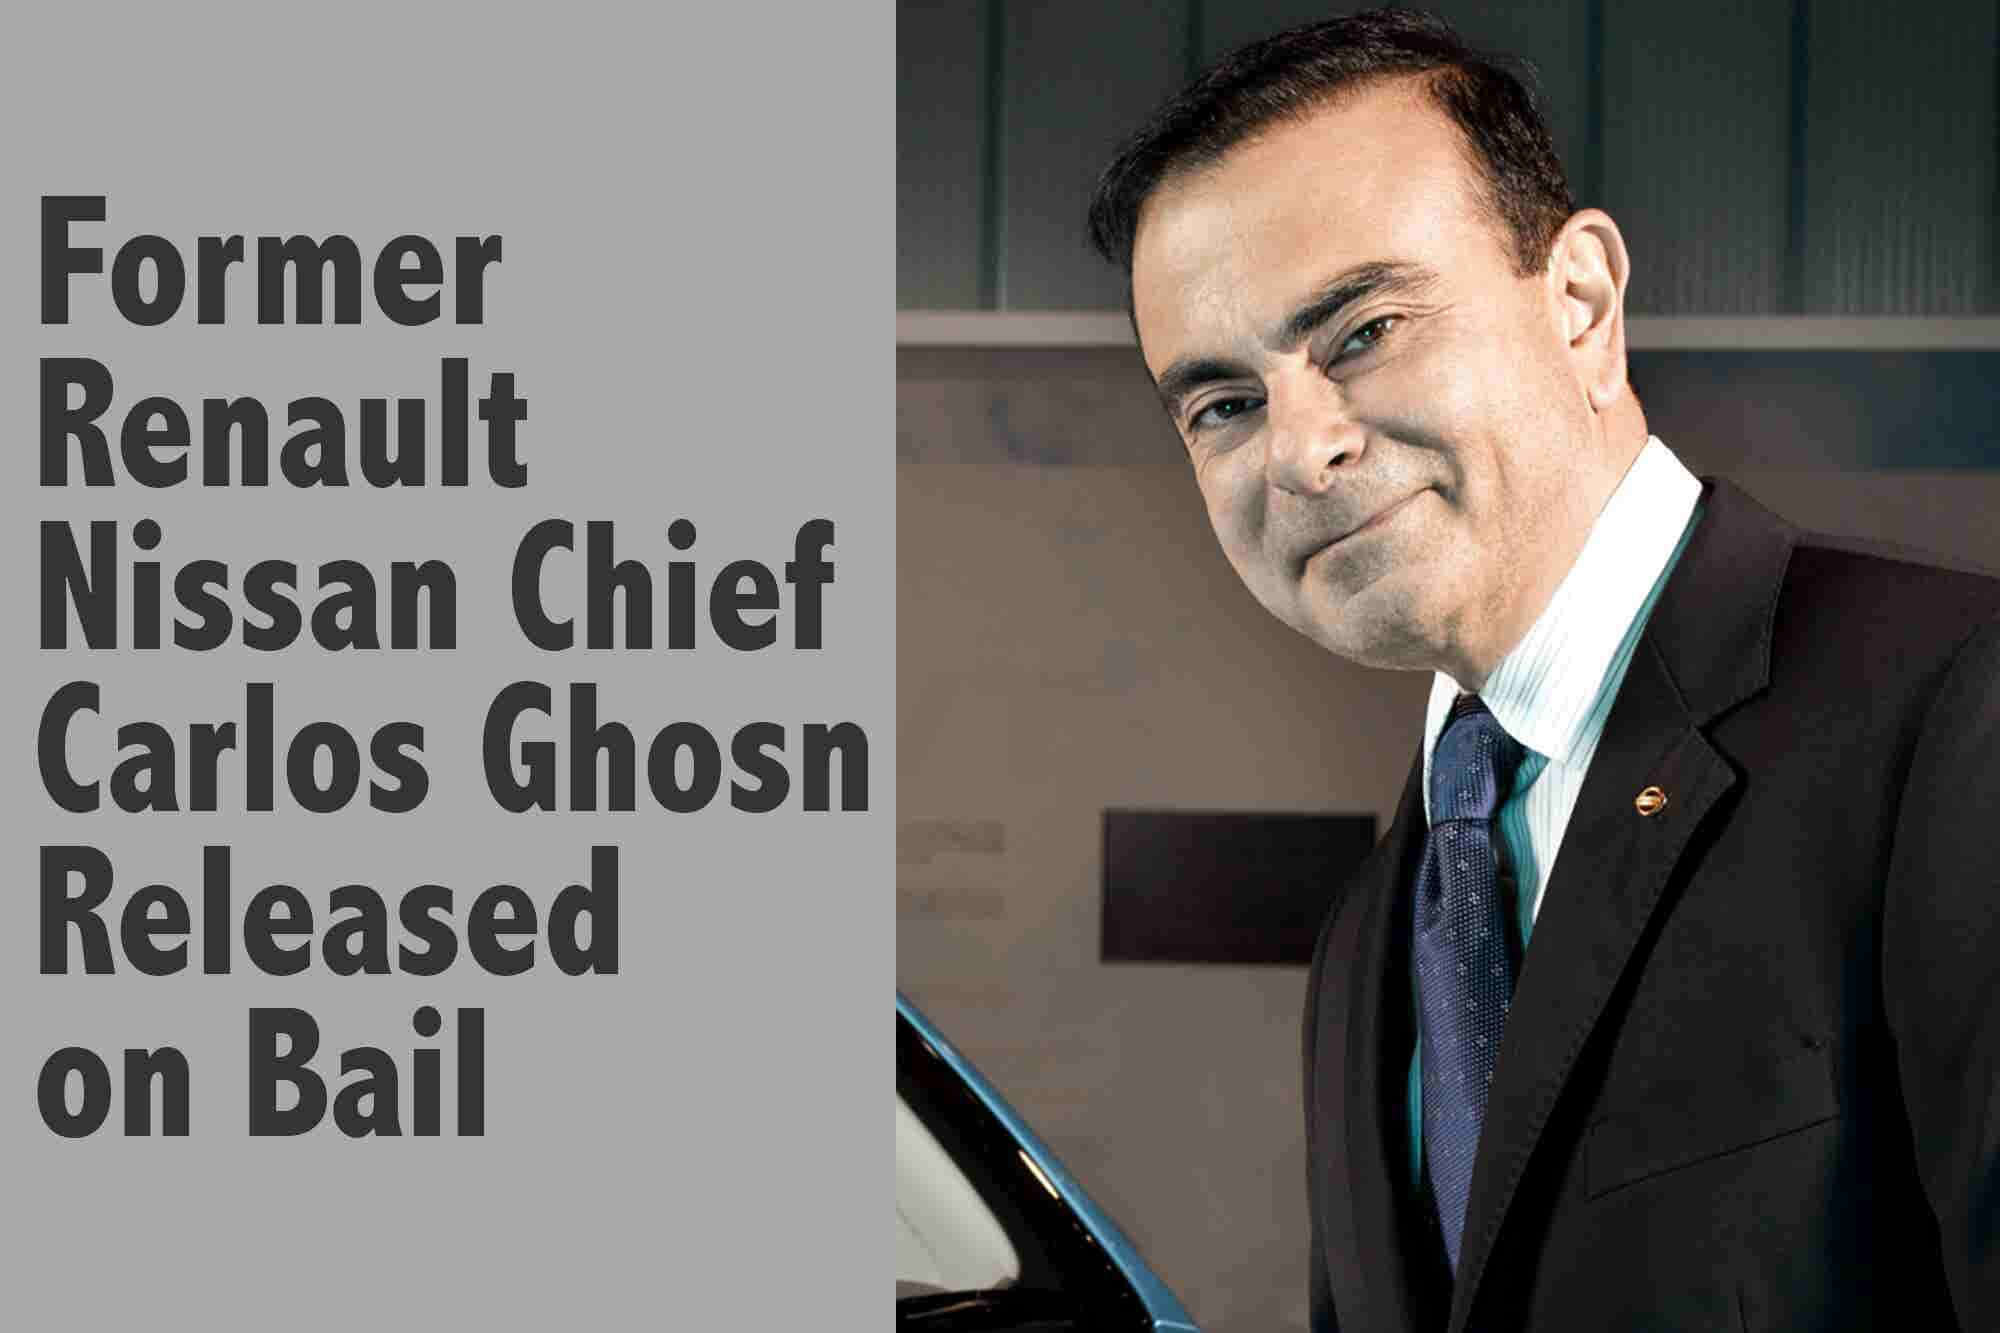 Friday Flashback: Former Renault Nissan Chief Carlos Ghosn Released on Bail